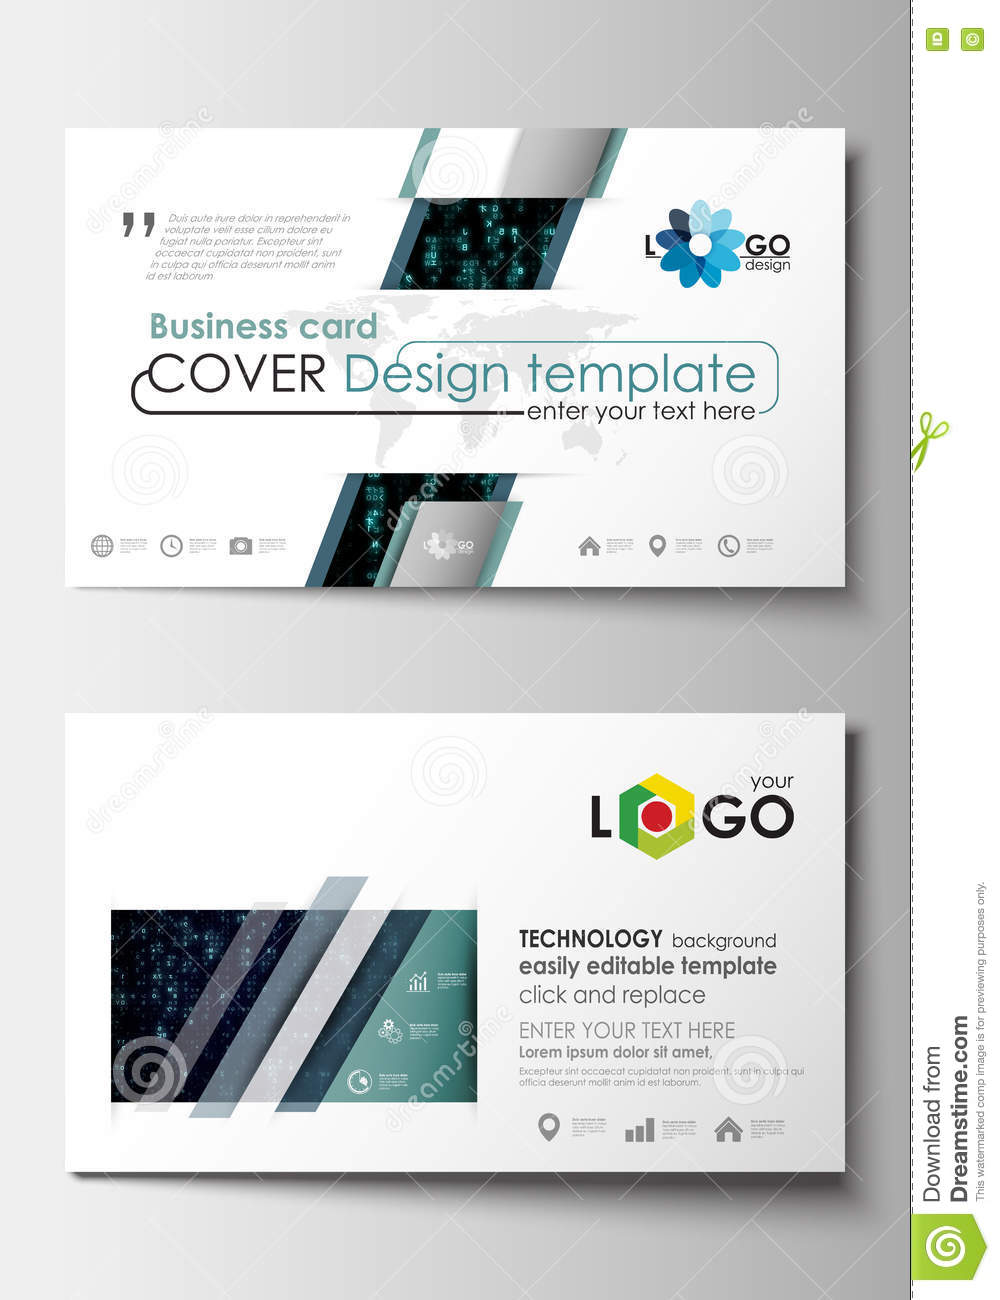 Business card templates cover design template easy editable blank download business card templates cover design template easy editable blank flat layout reheart Gallery